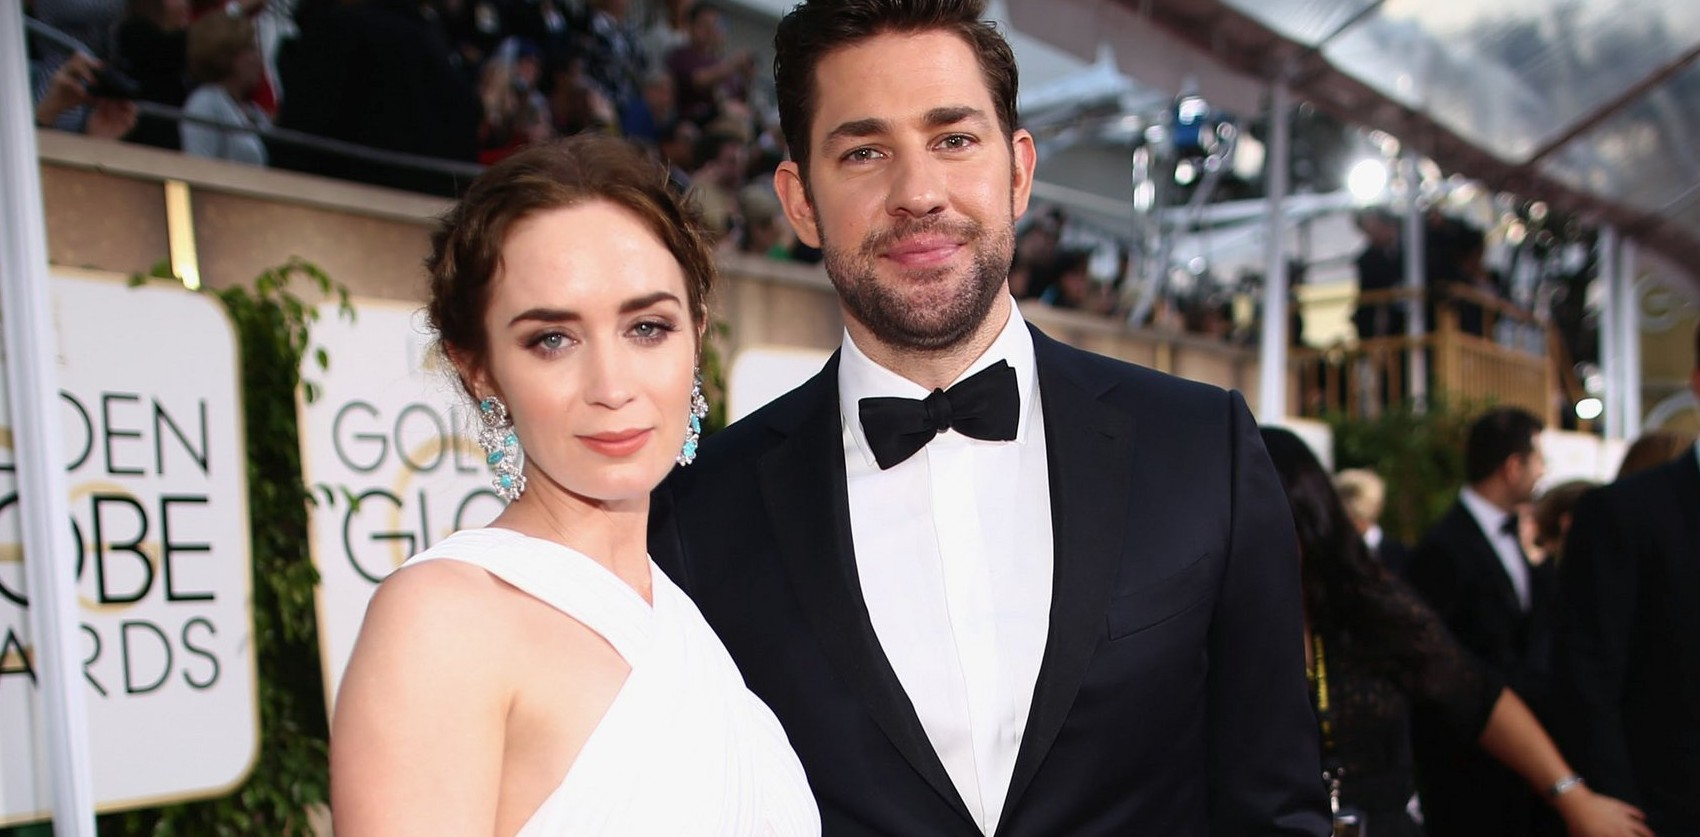 Golden Globe Awards Pictures